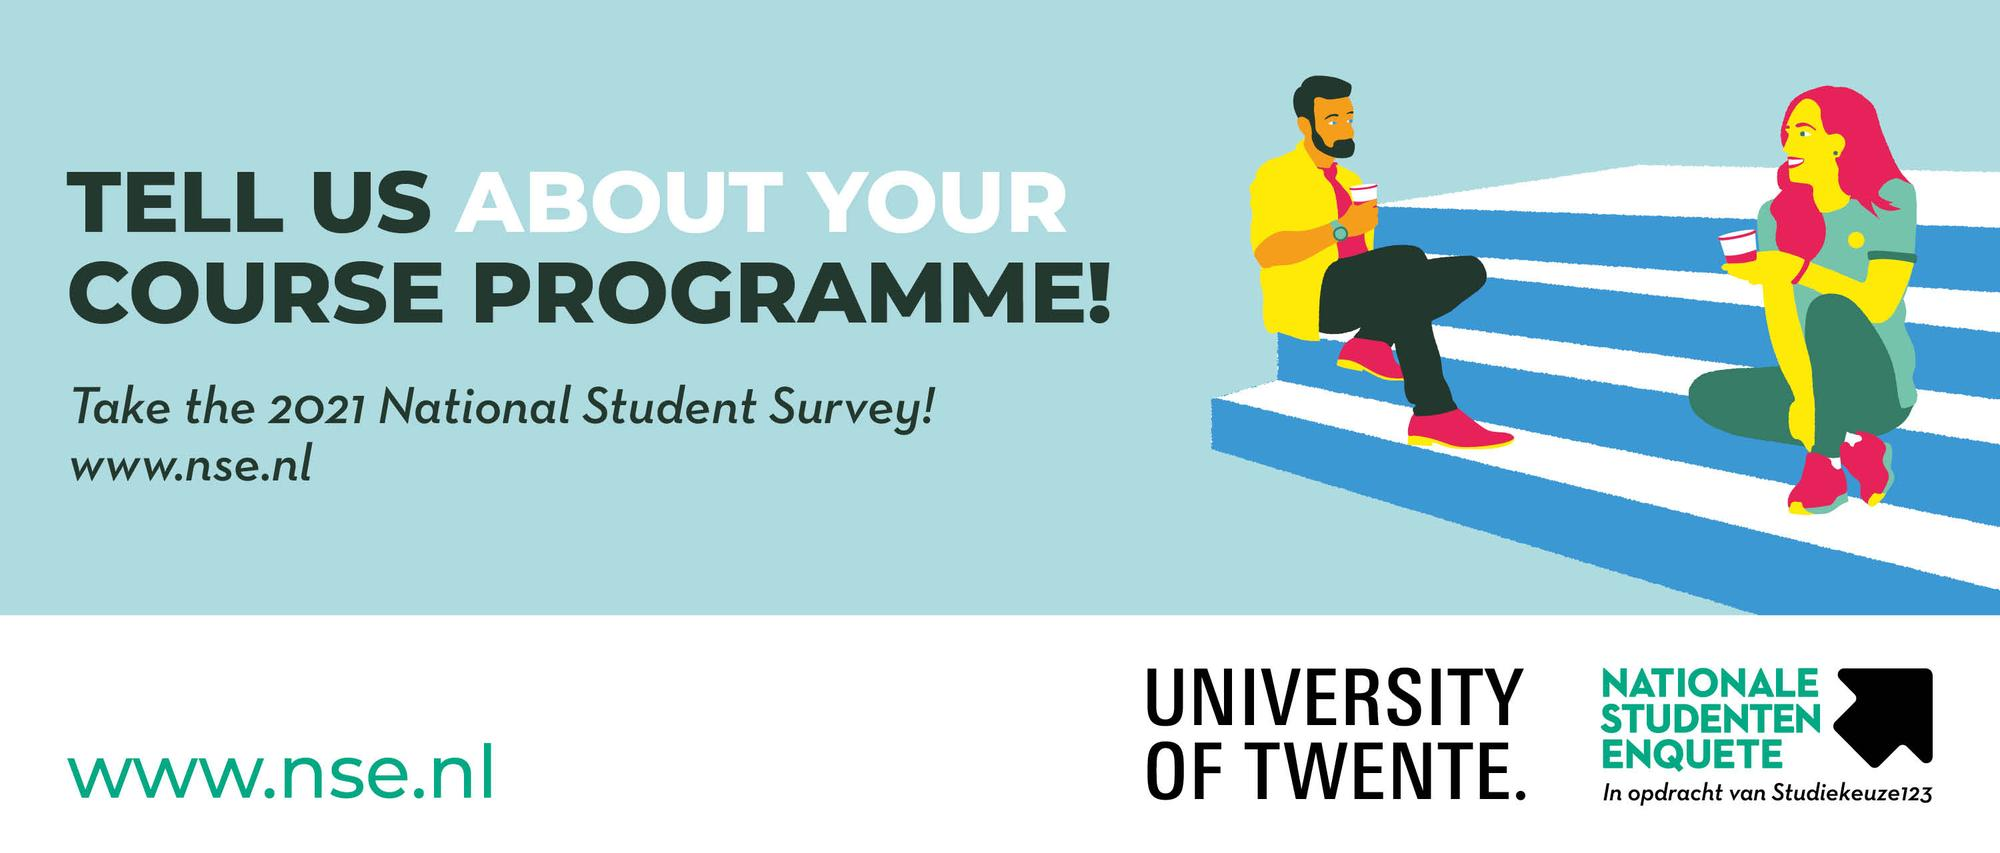 Take the National Student Survey now to help improve the program!